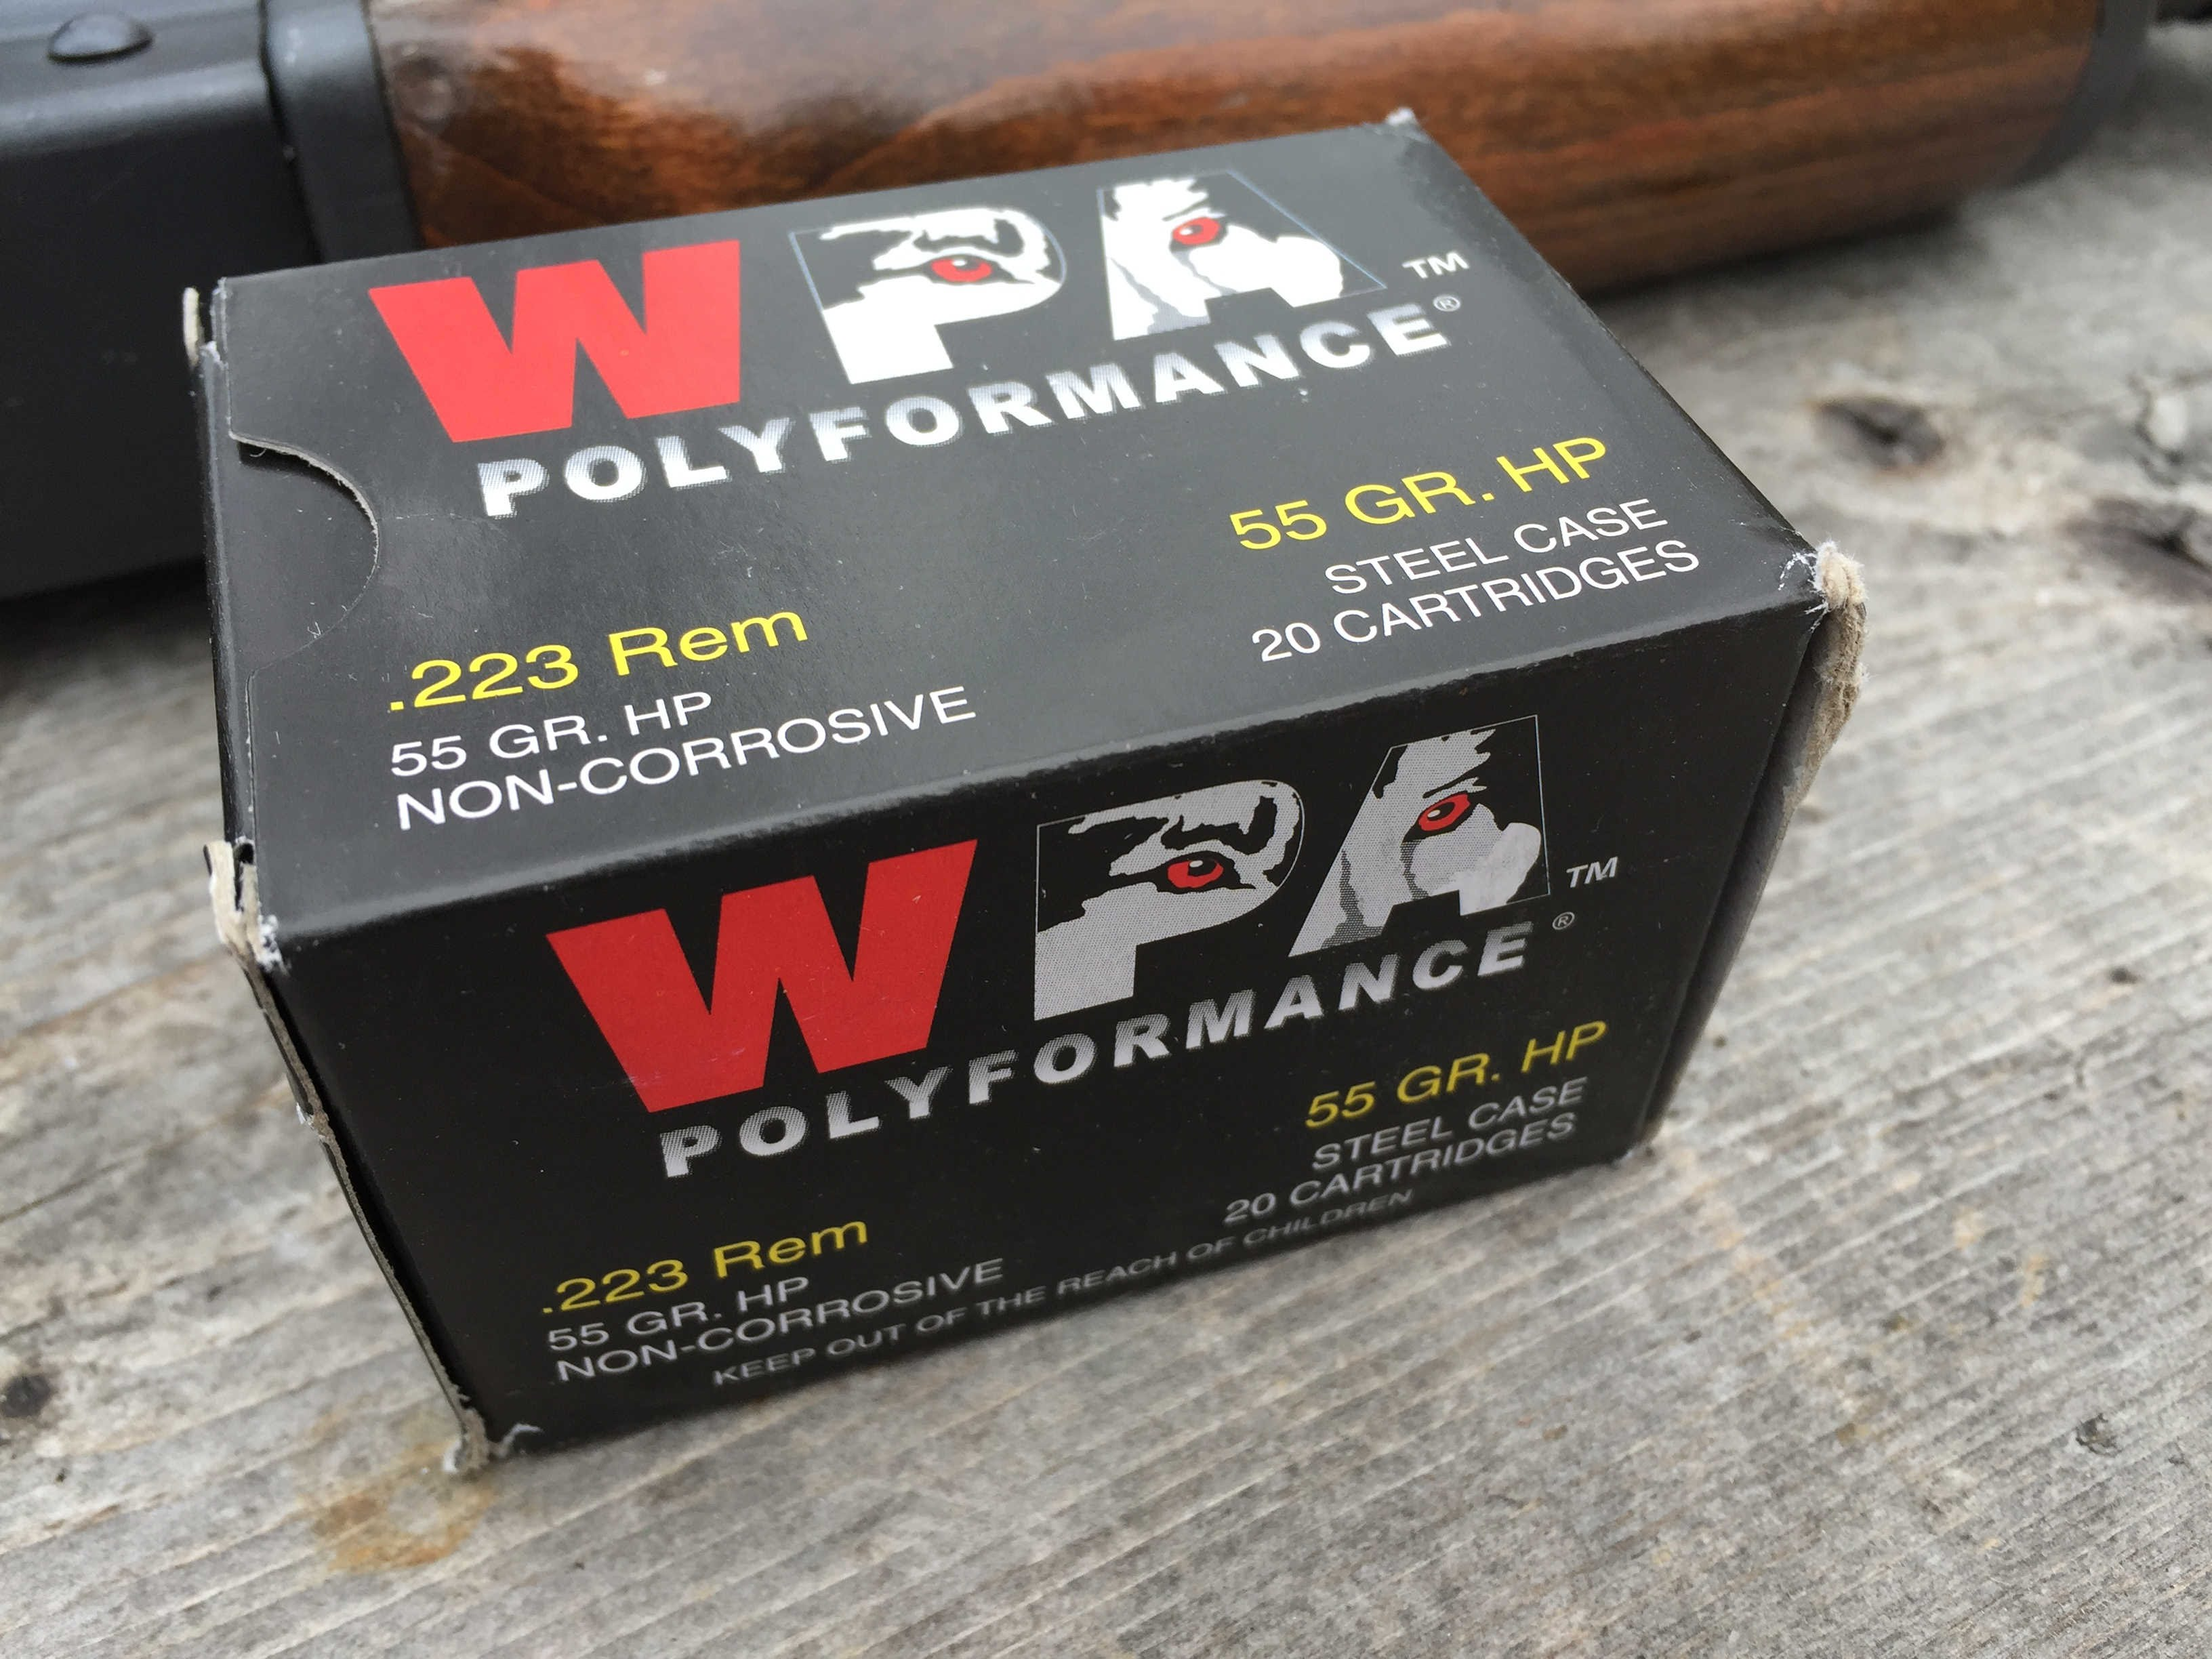 .223 Remington, 55gr HP, Wolf Polyformance, Velocity and Gel Test